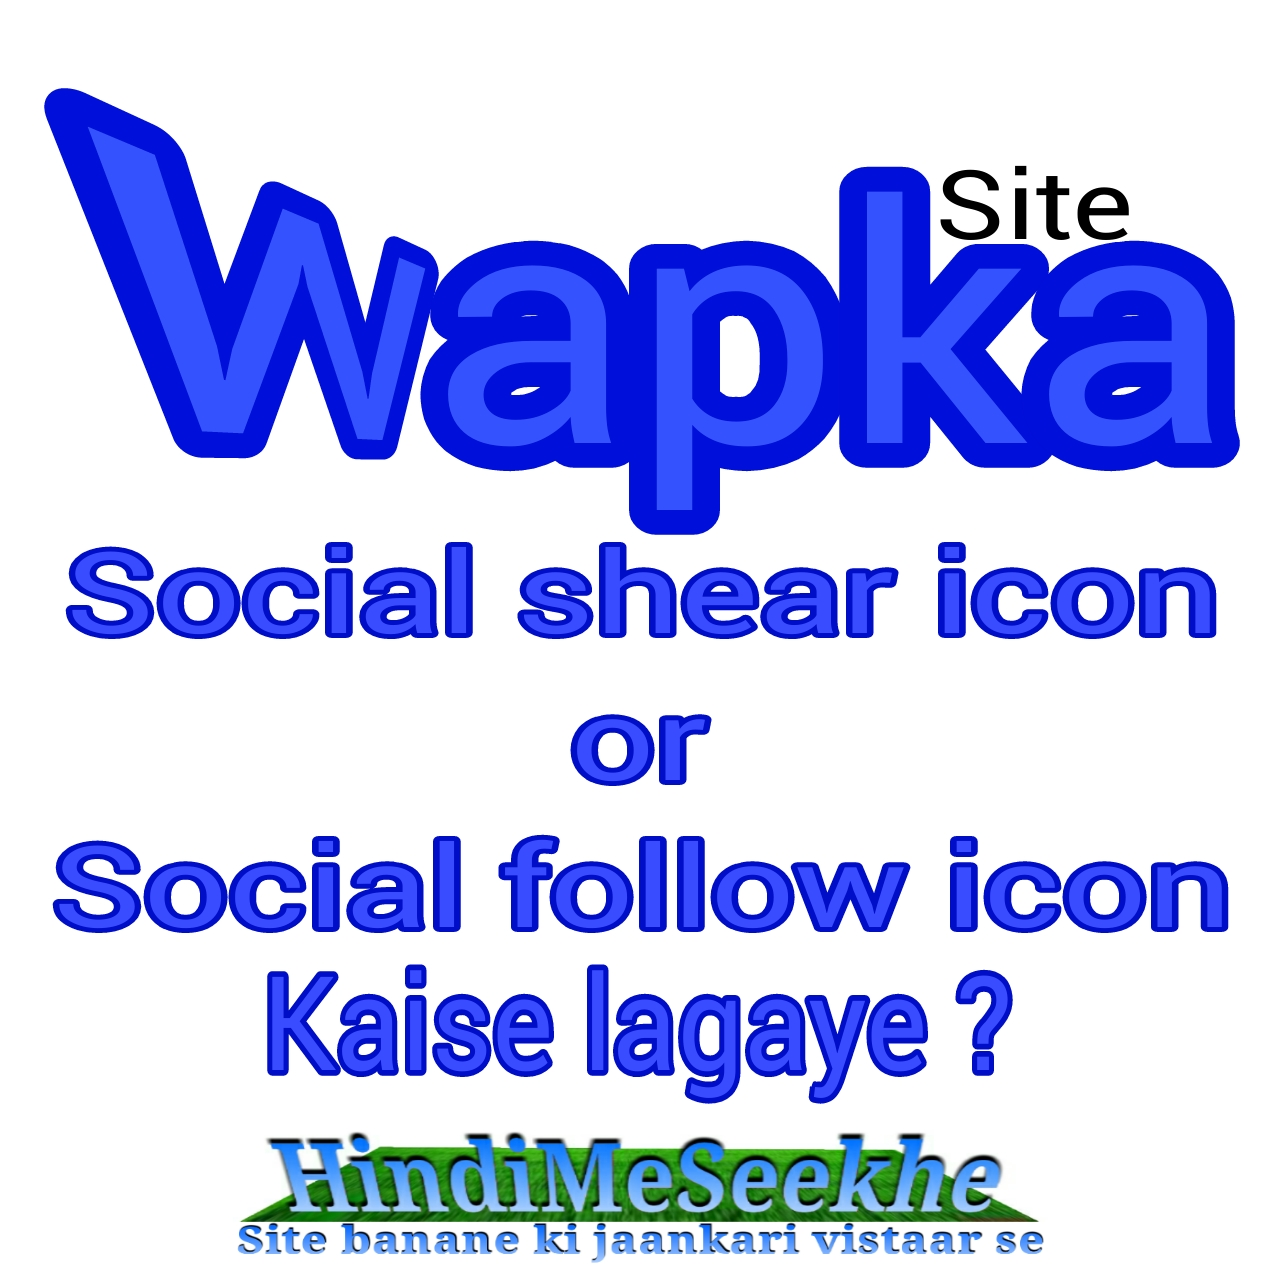 Wapka-website-social-shere-icon-code-social-follow-icon-code-kaise-lagaye